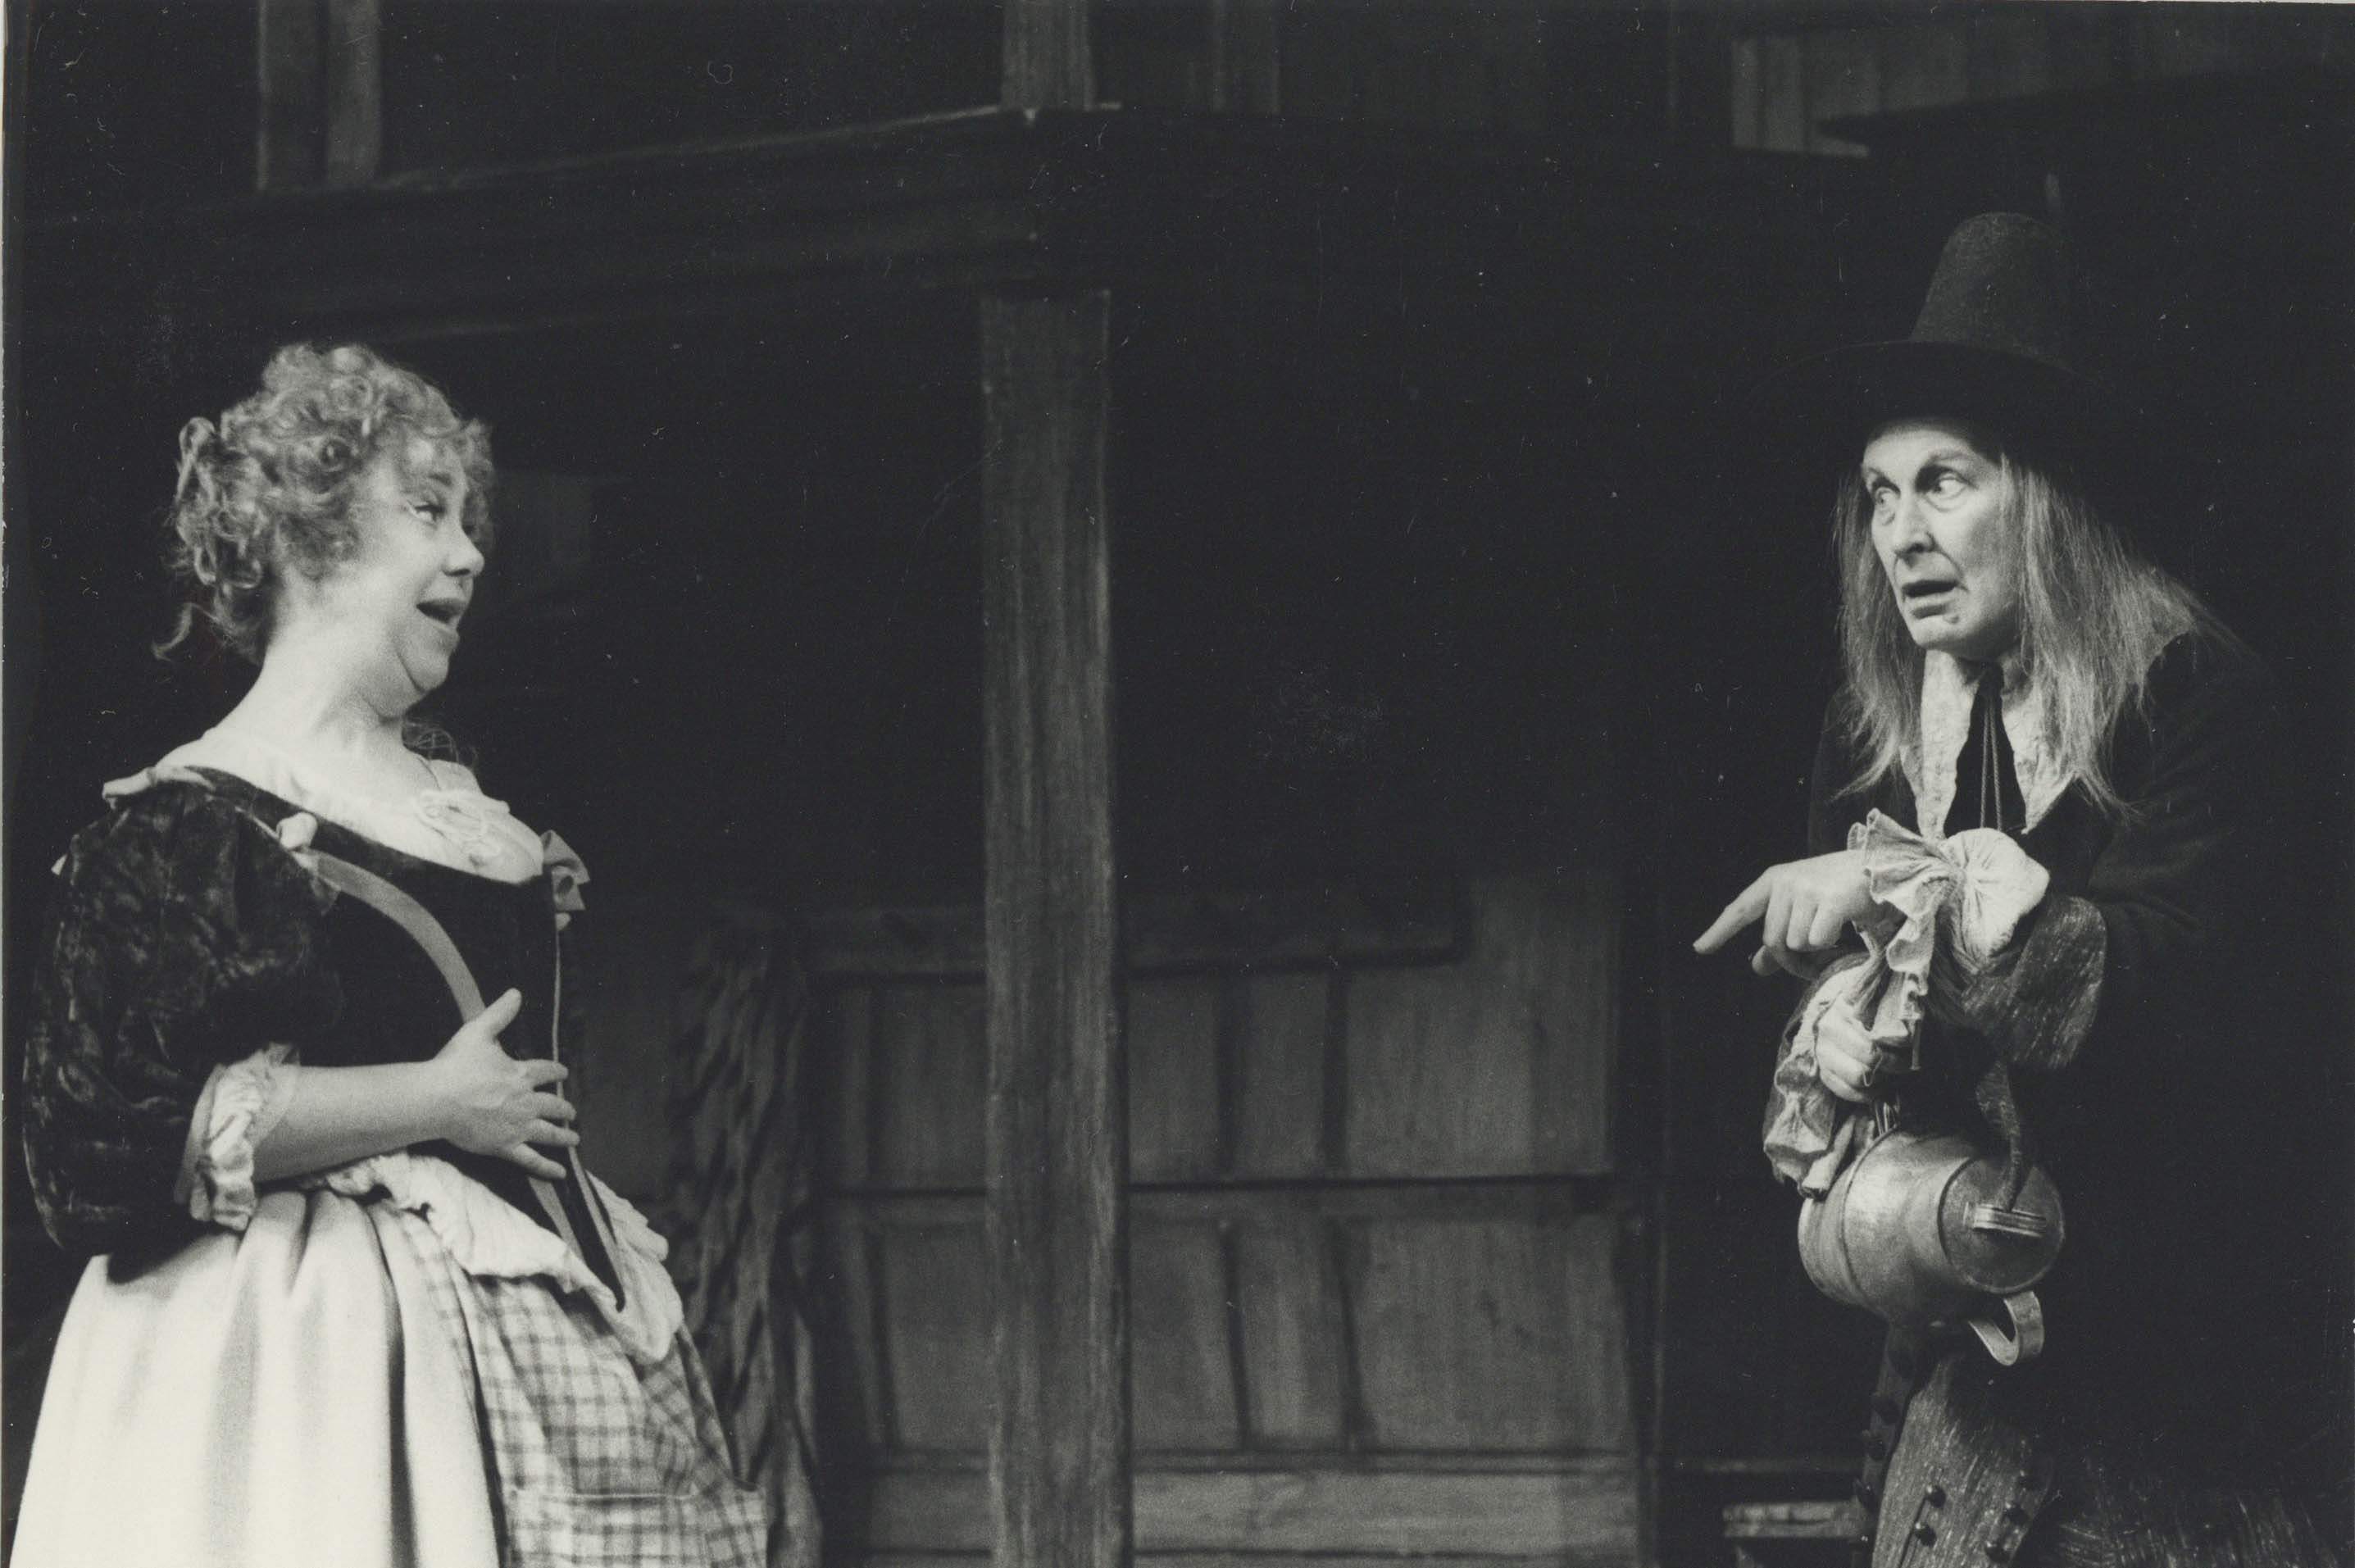 Production Photograph - The Confederacy - Peggy Mount, Peter Gilmore - Photographer Zoe Dominic -  1974 H17 x W24 1 of 2